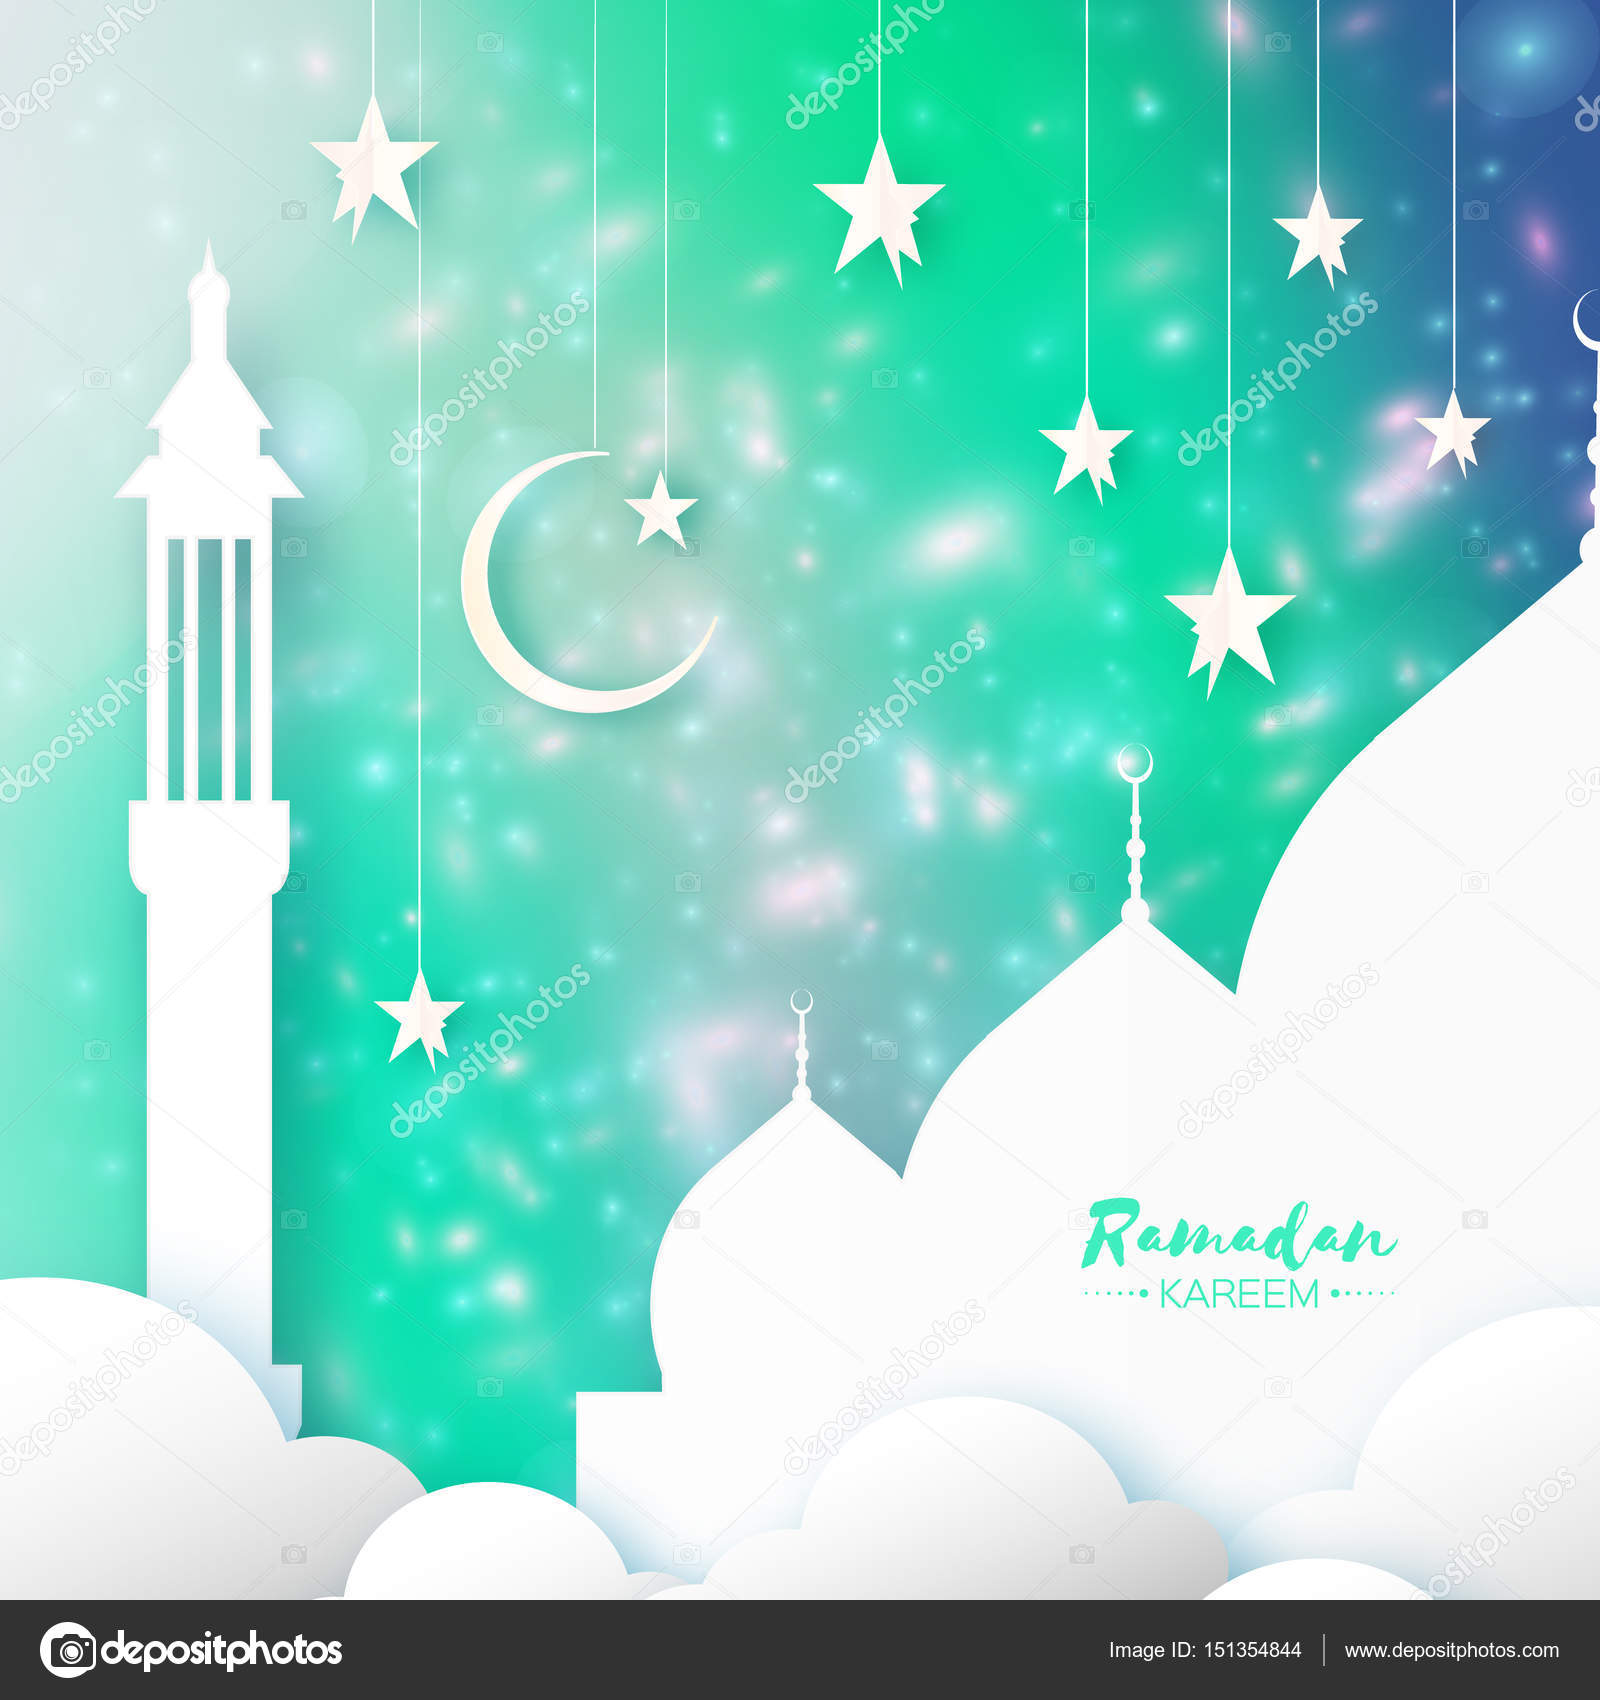 Green ramadan kareem greeting card arabic window mosque clouds arabic mosque clouds white stars in paper cut style crescent moon holy month of muslim symbol of islam origami greeting card green background kristyandbryce Image collections